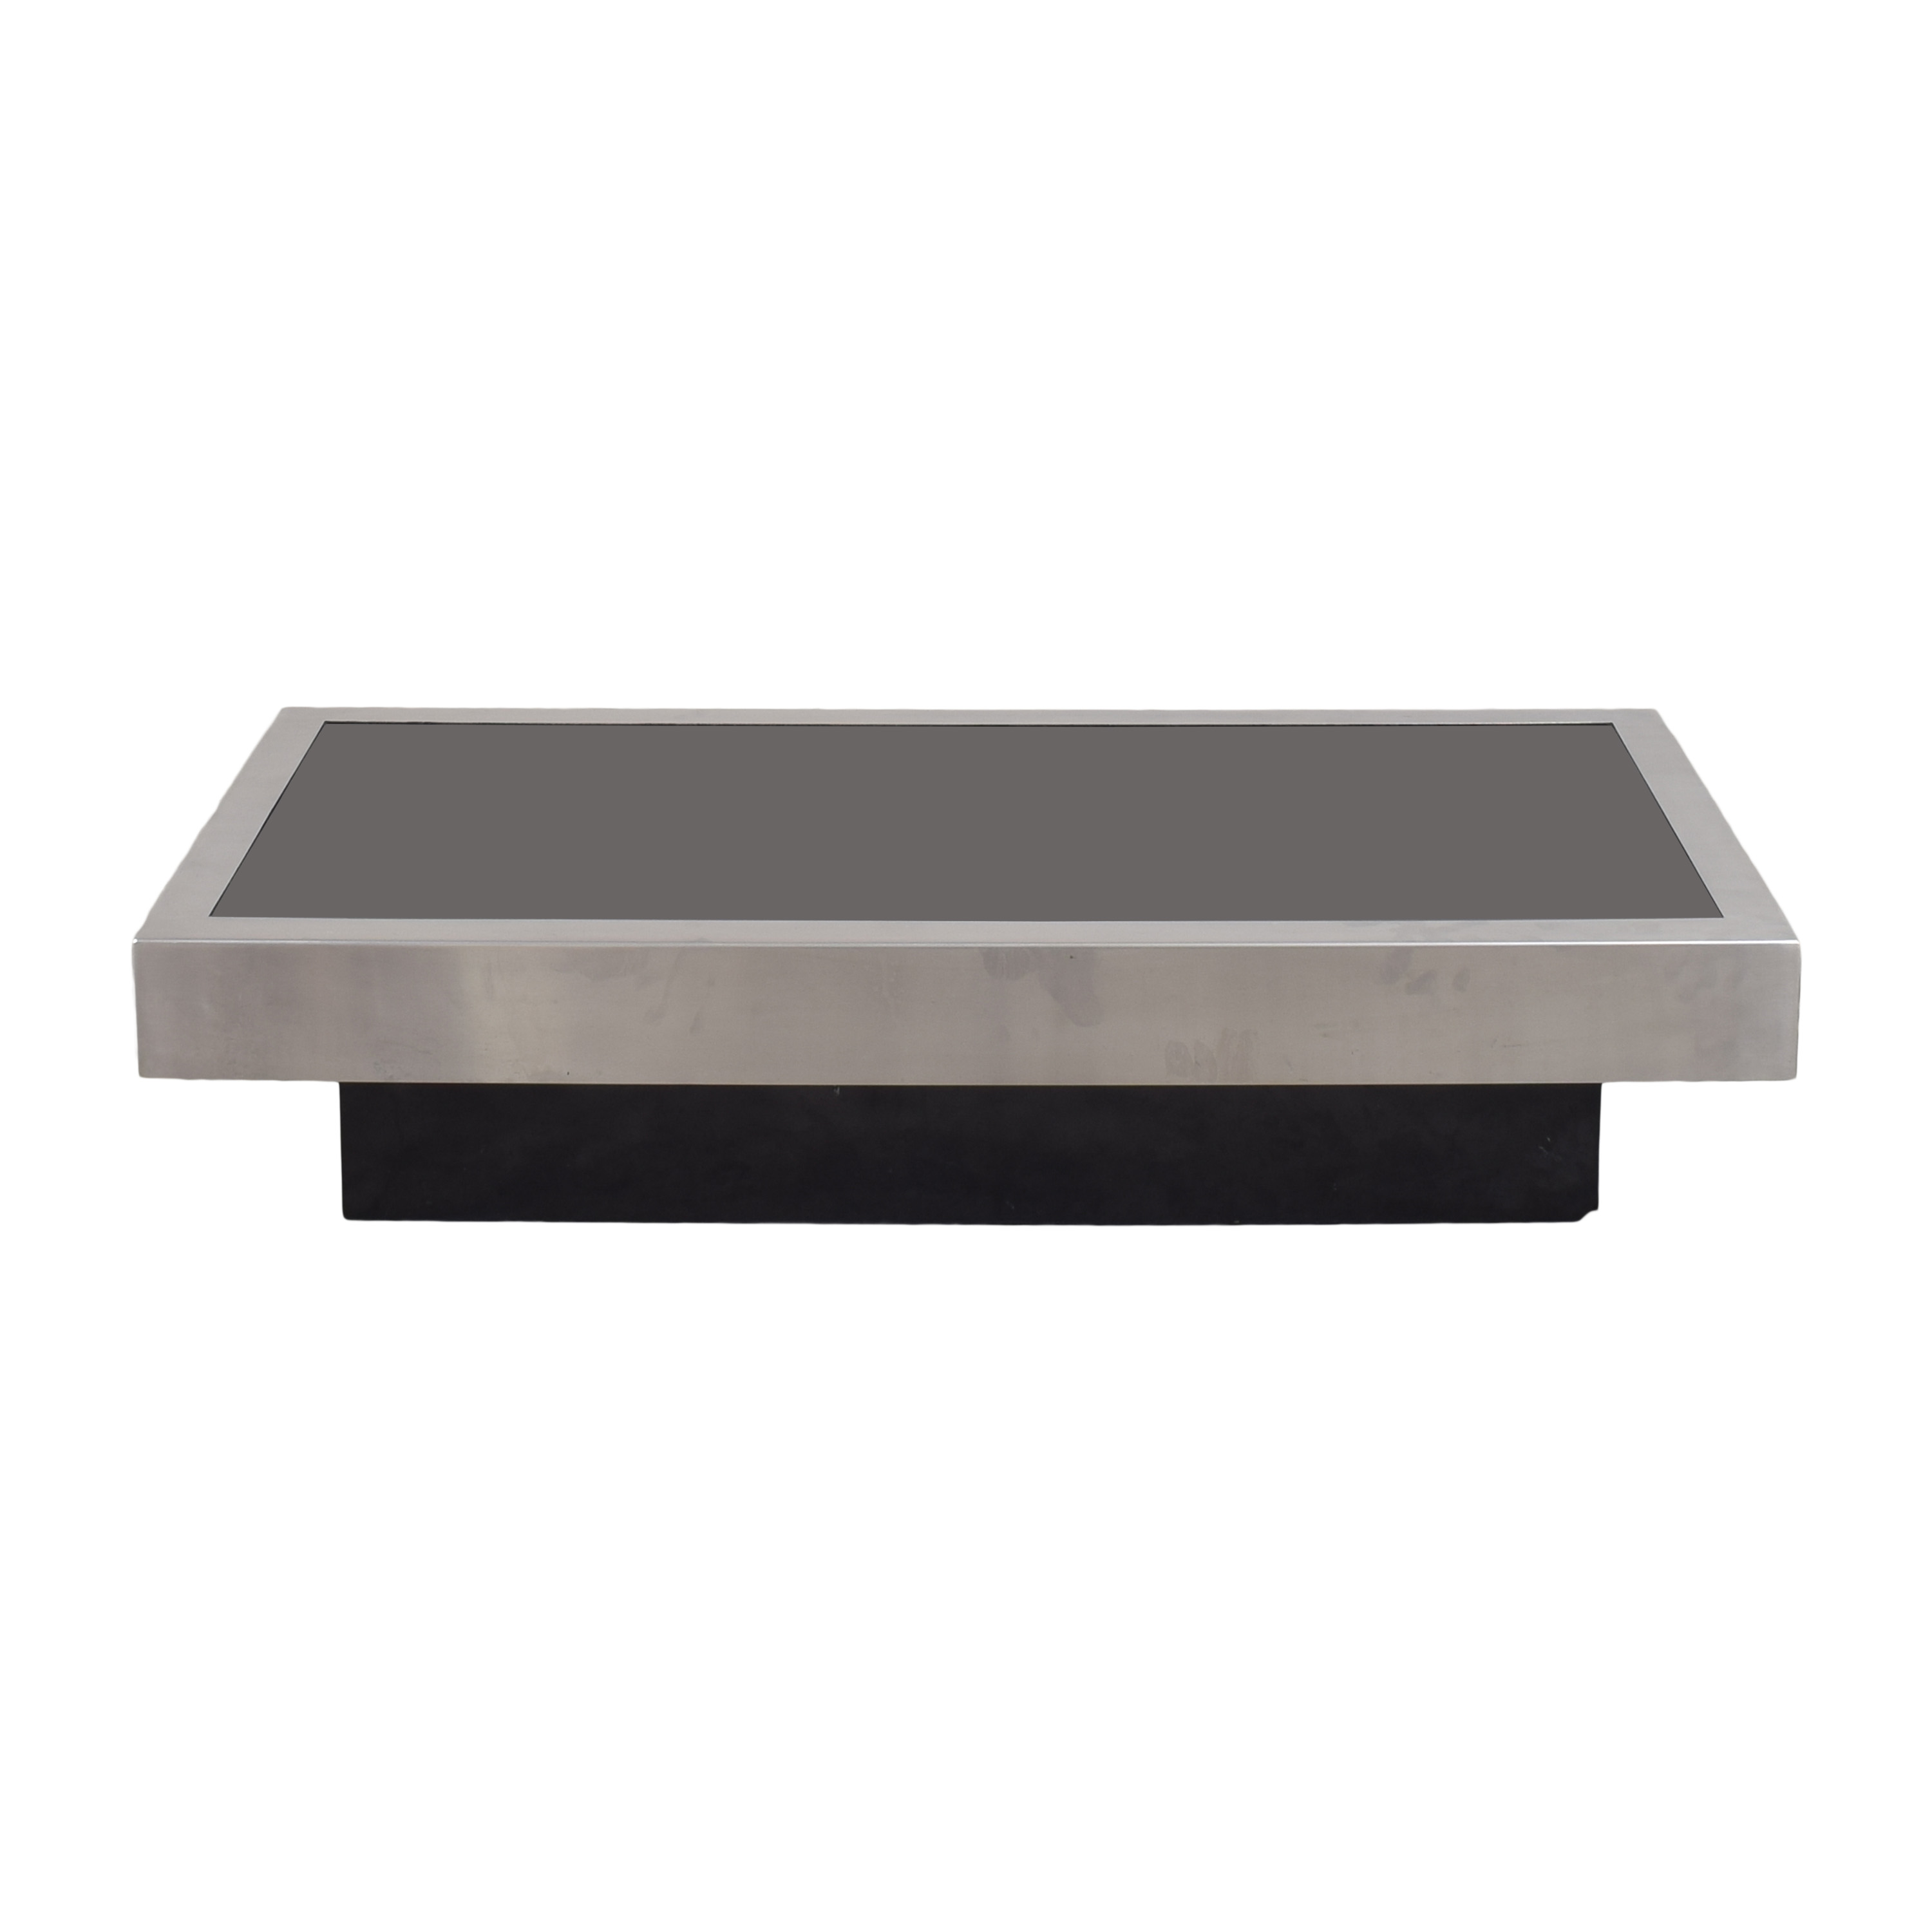 Cidue Cidue by Willy Rizzo Coffee Table for sale